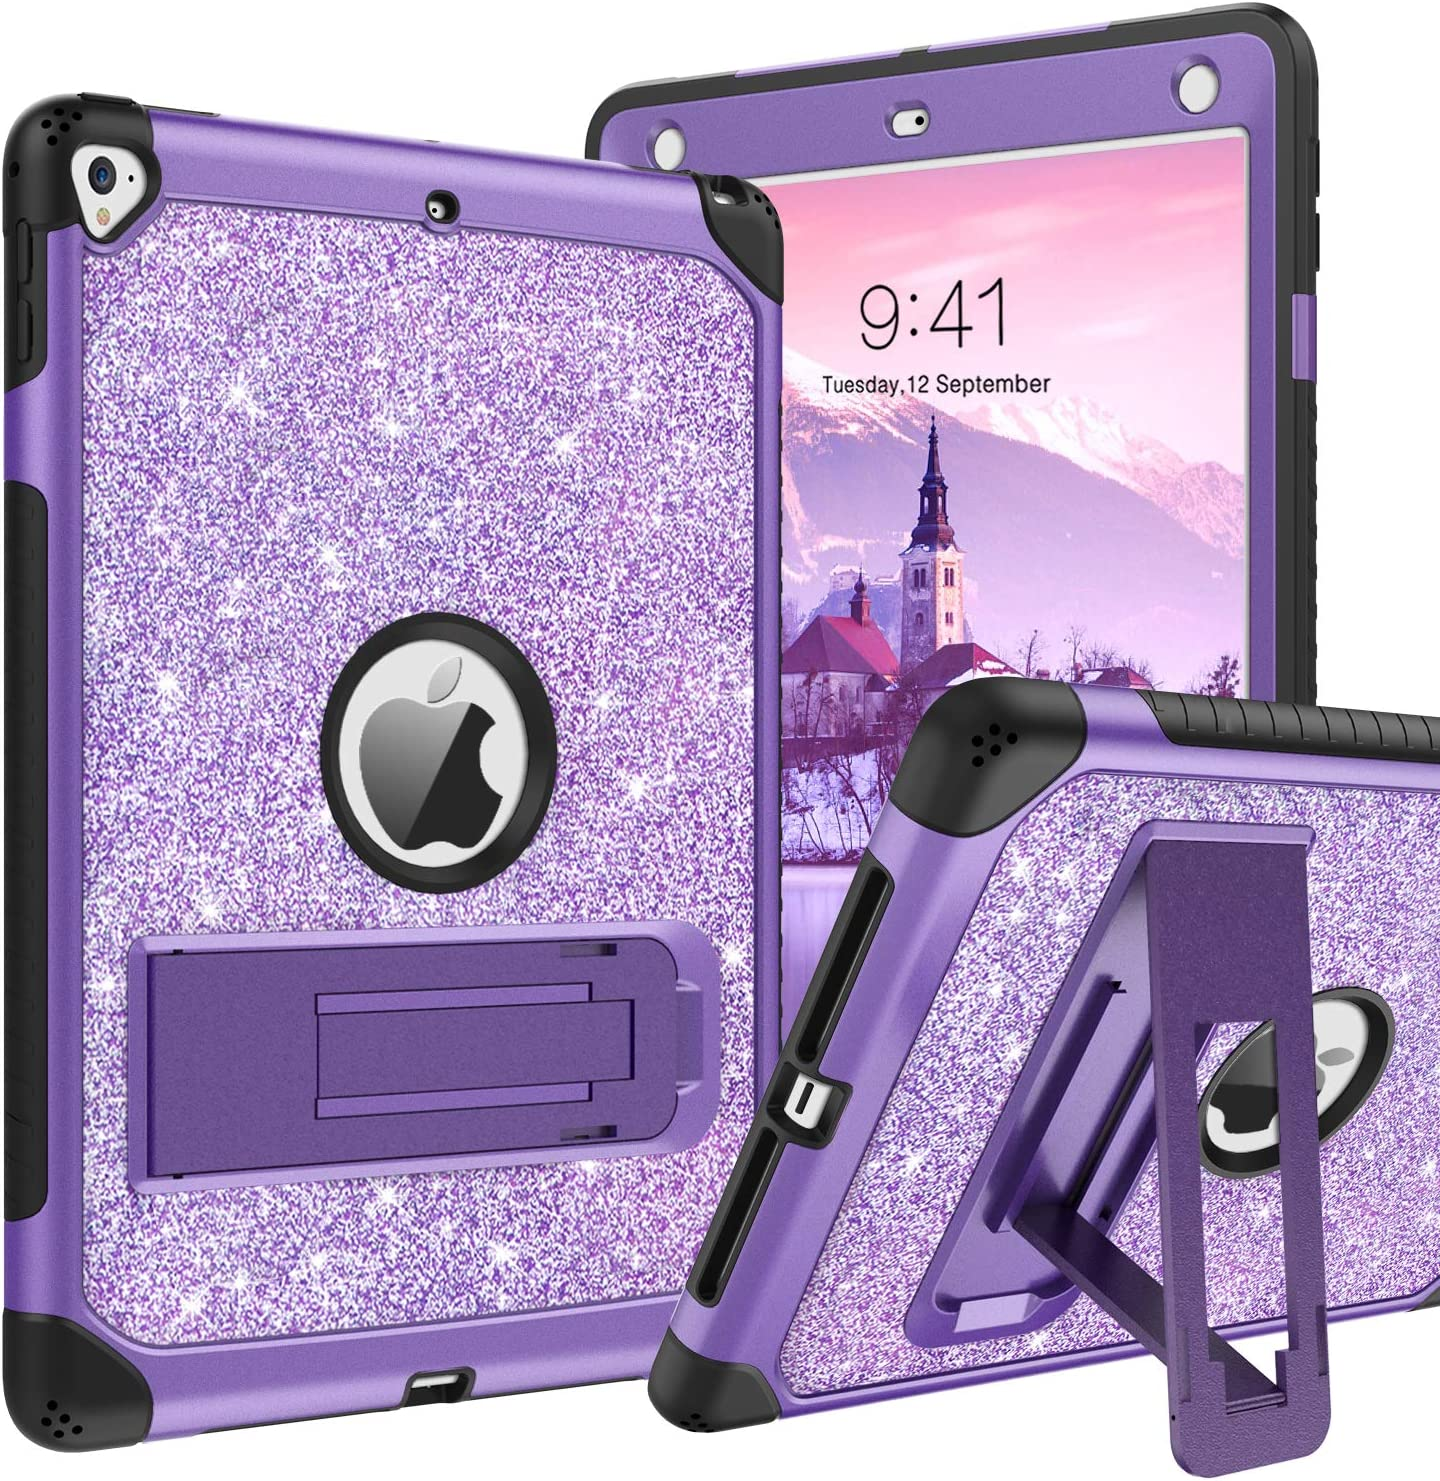 iPad 9.7 Case 2017/2018,iPad Air 2 Case,iPad 6th/5th Generation Case with Kickstand,DUEDUE Glitter Bling 3 in 1 Heavy Duty Hard PC Cover Shockproof Full Protective Case for iPad Pro 9.7,Purple